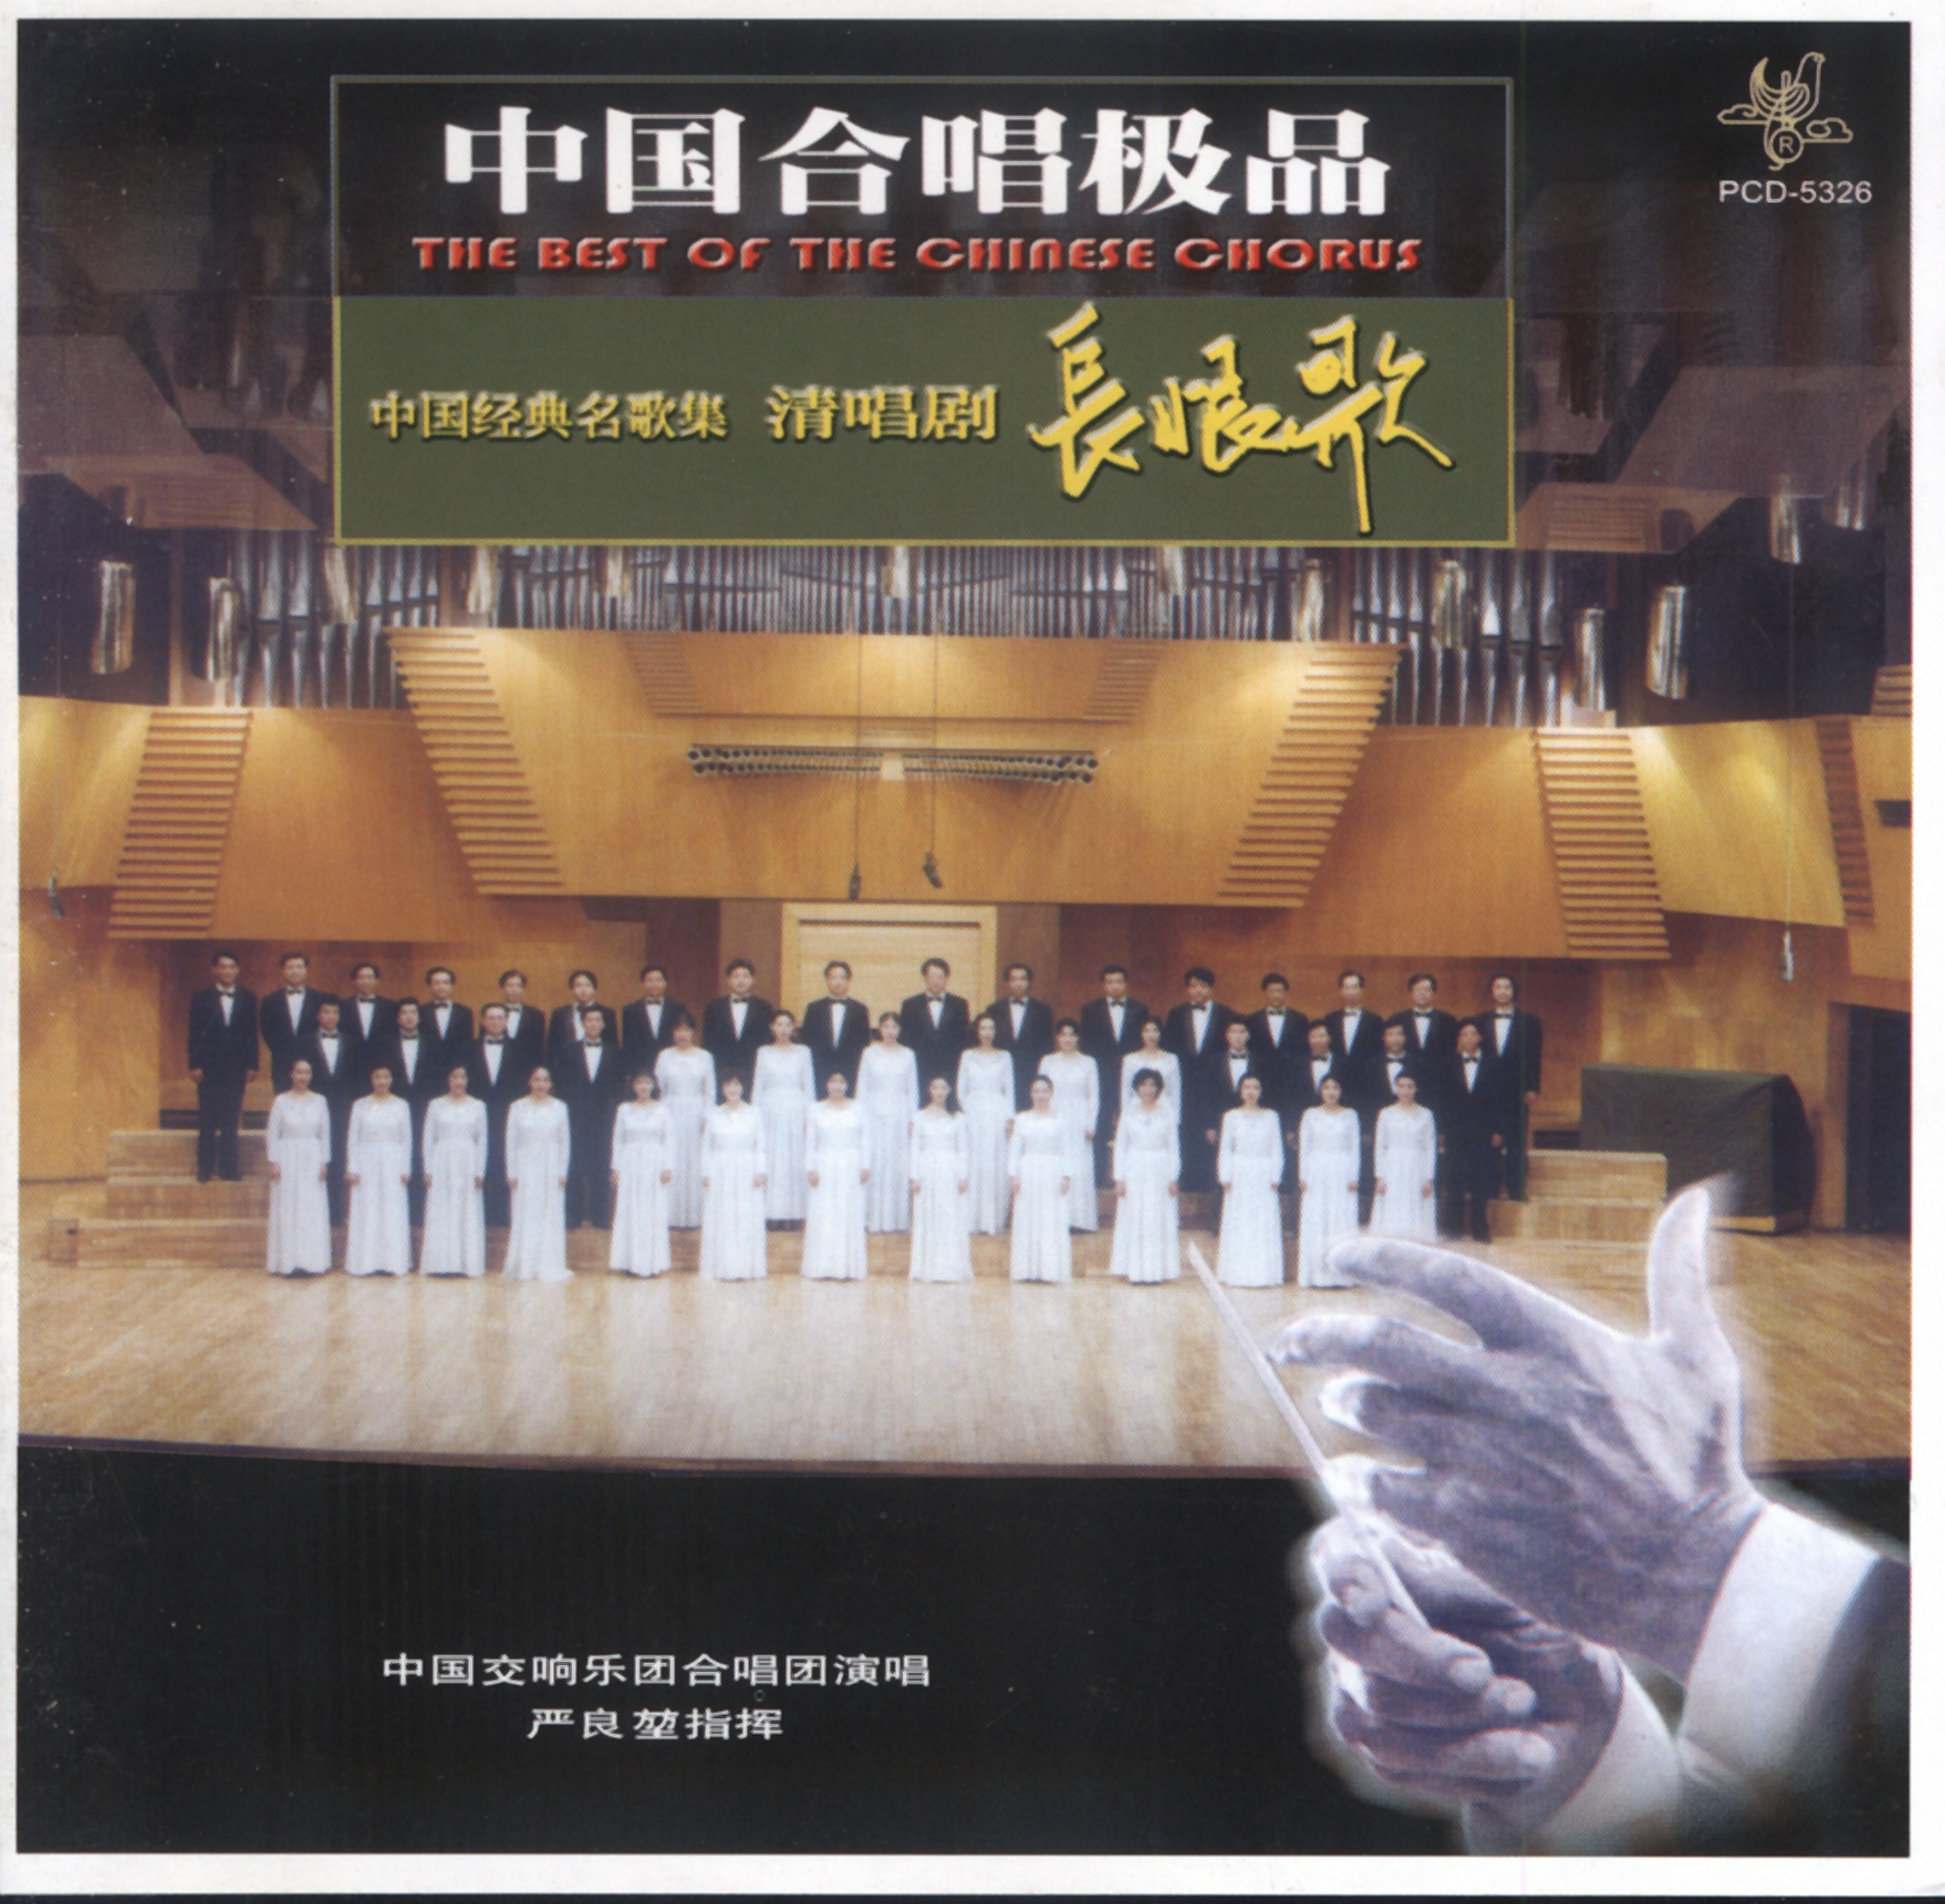 The Best of Chinese Choral Music 1: Classic Chinese Folk Songs